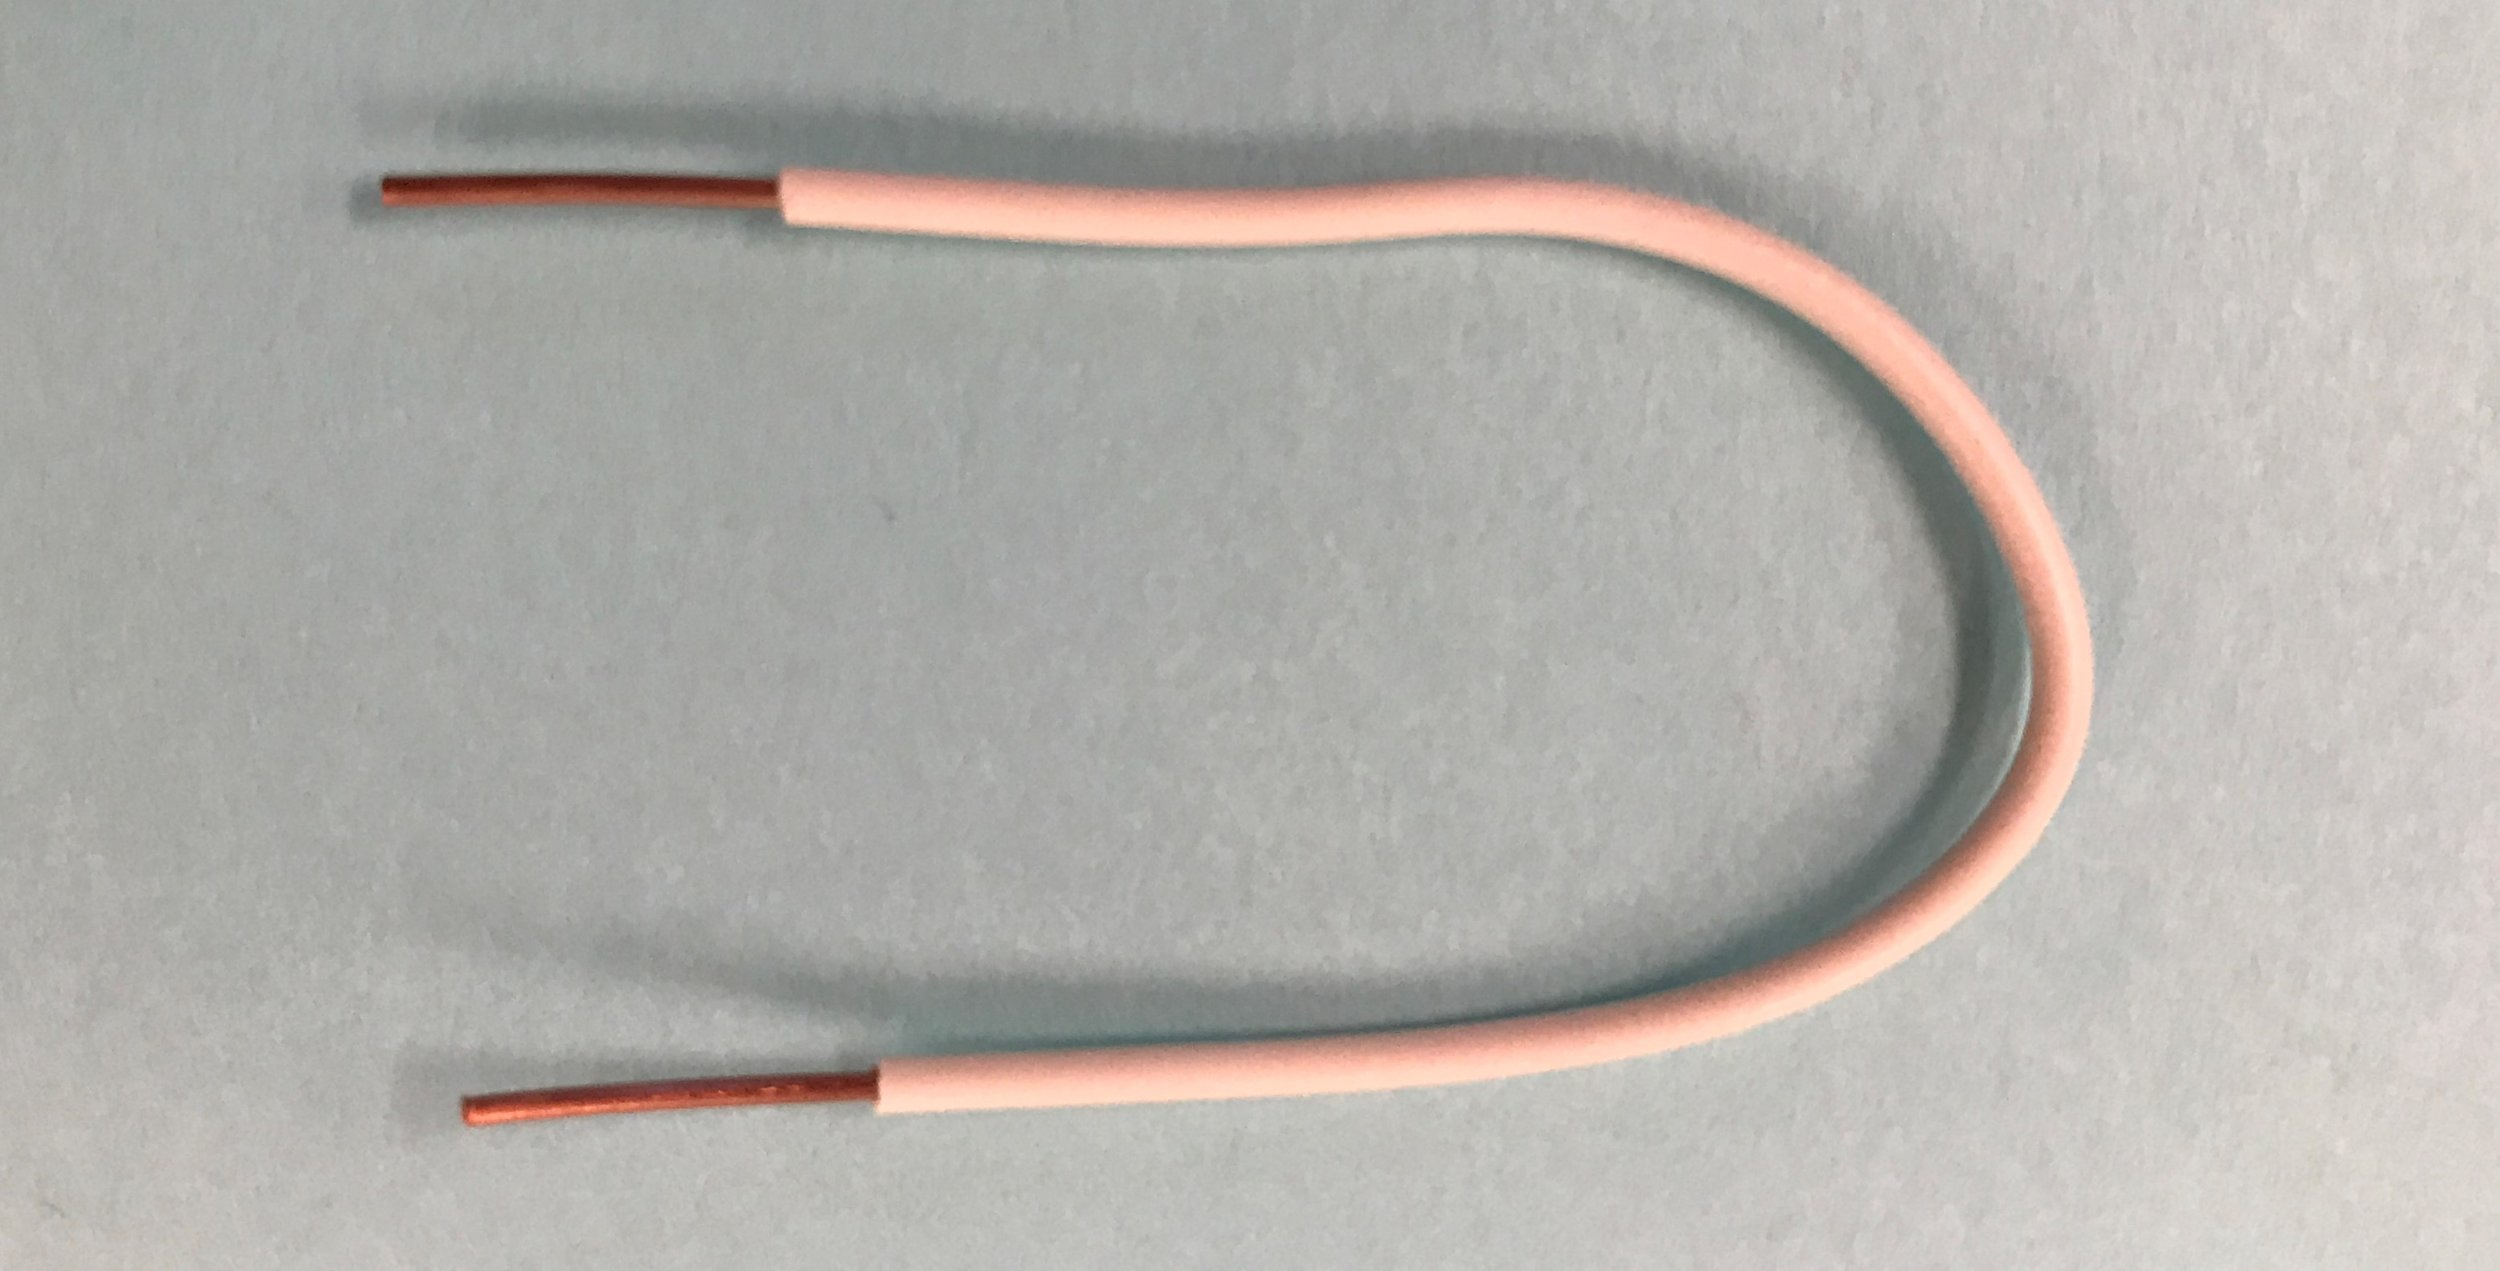 - This technique is used in the real AstroPi flight units.Take the long wire from the Wiring Kit. It should be about 1 meter in length. Using a ruler and wire cutter, make five 10cm lengths.Use the wire stripper to expose at least 1cm of bare wire on each end, then bend the wire into a U shape.